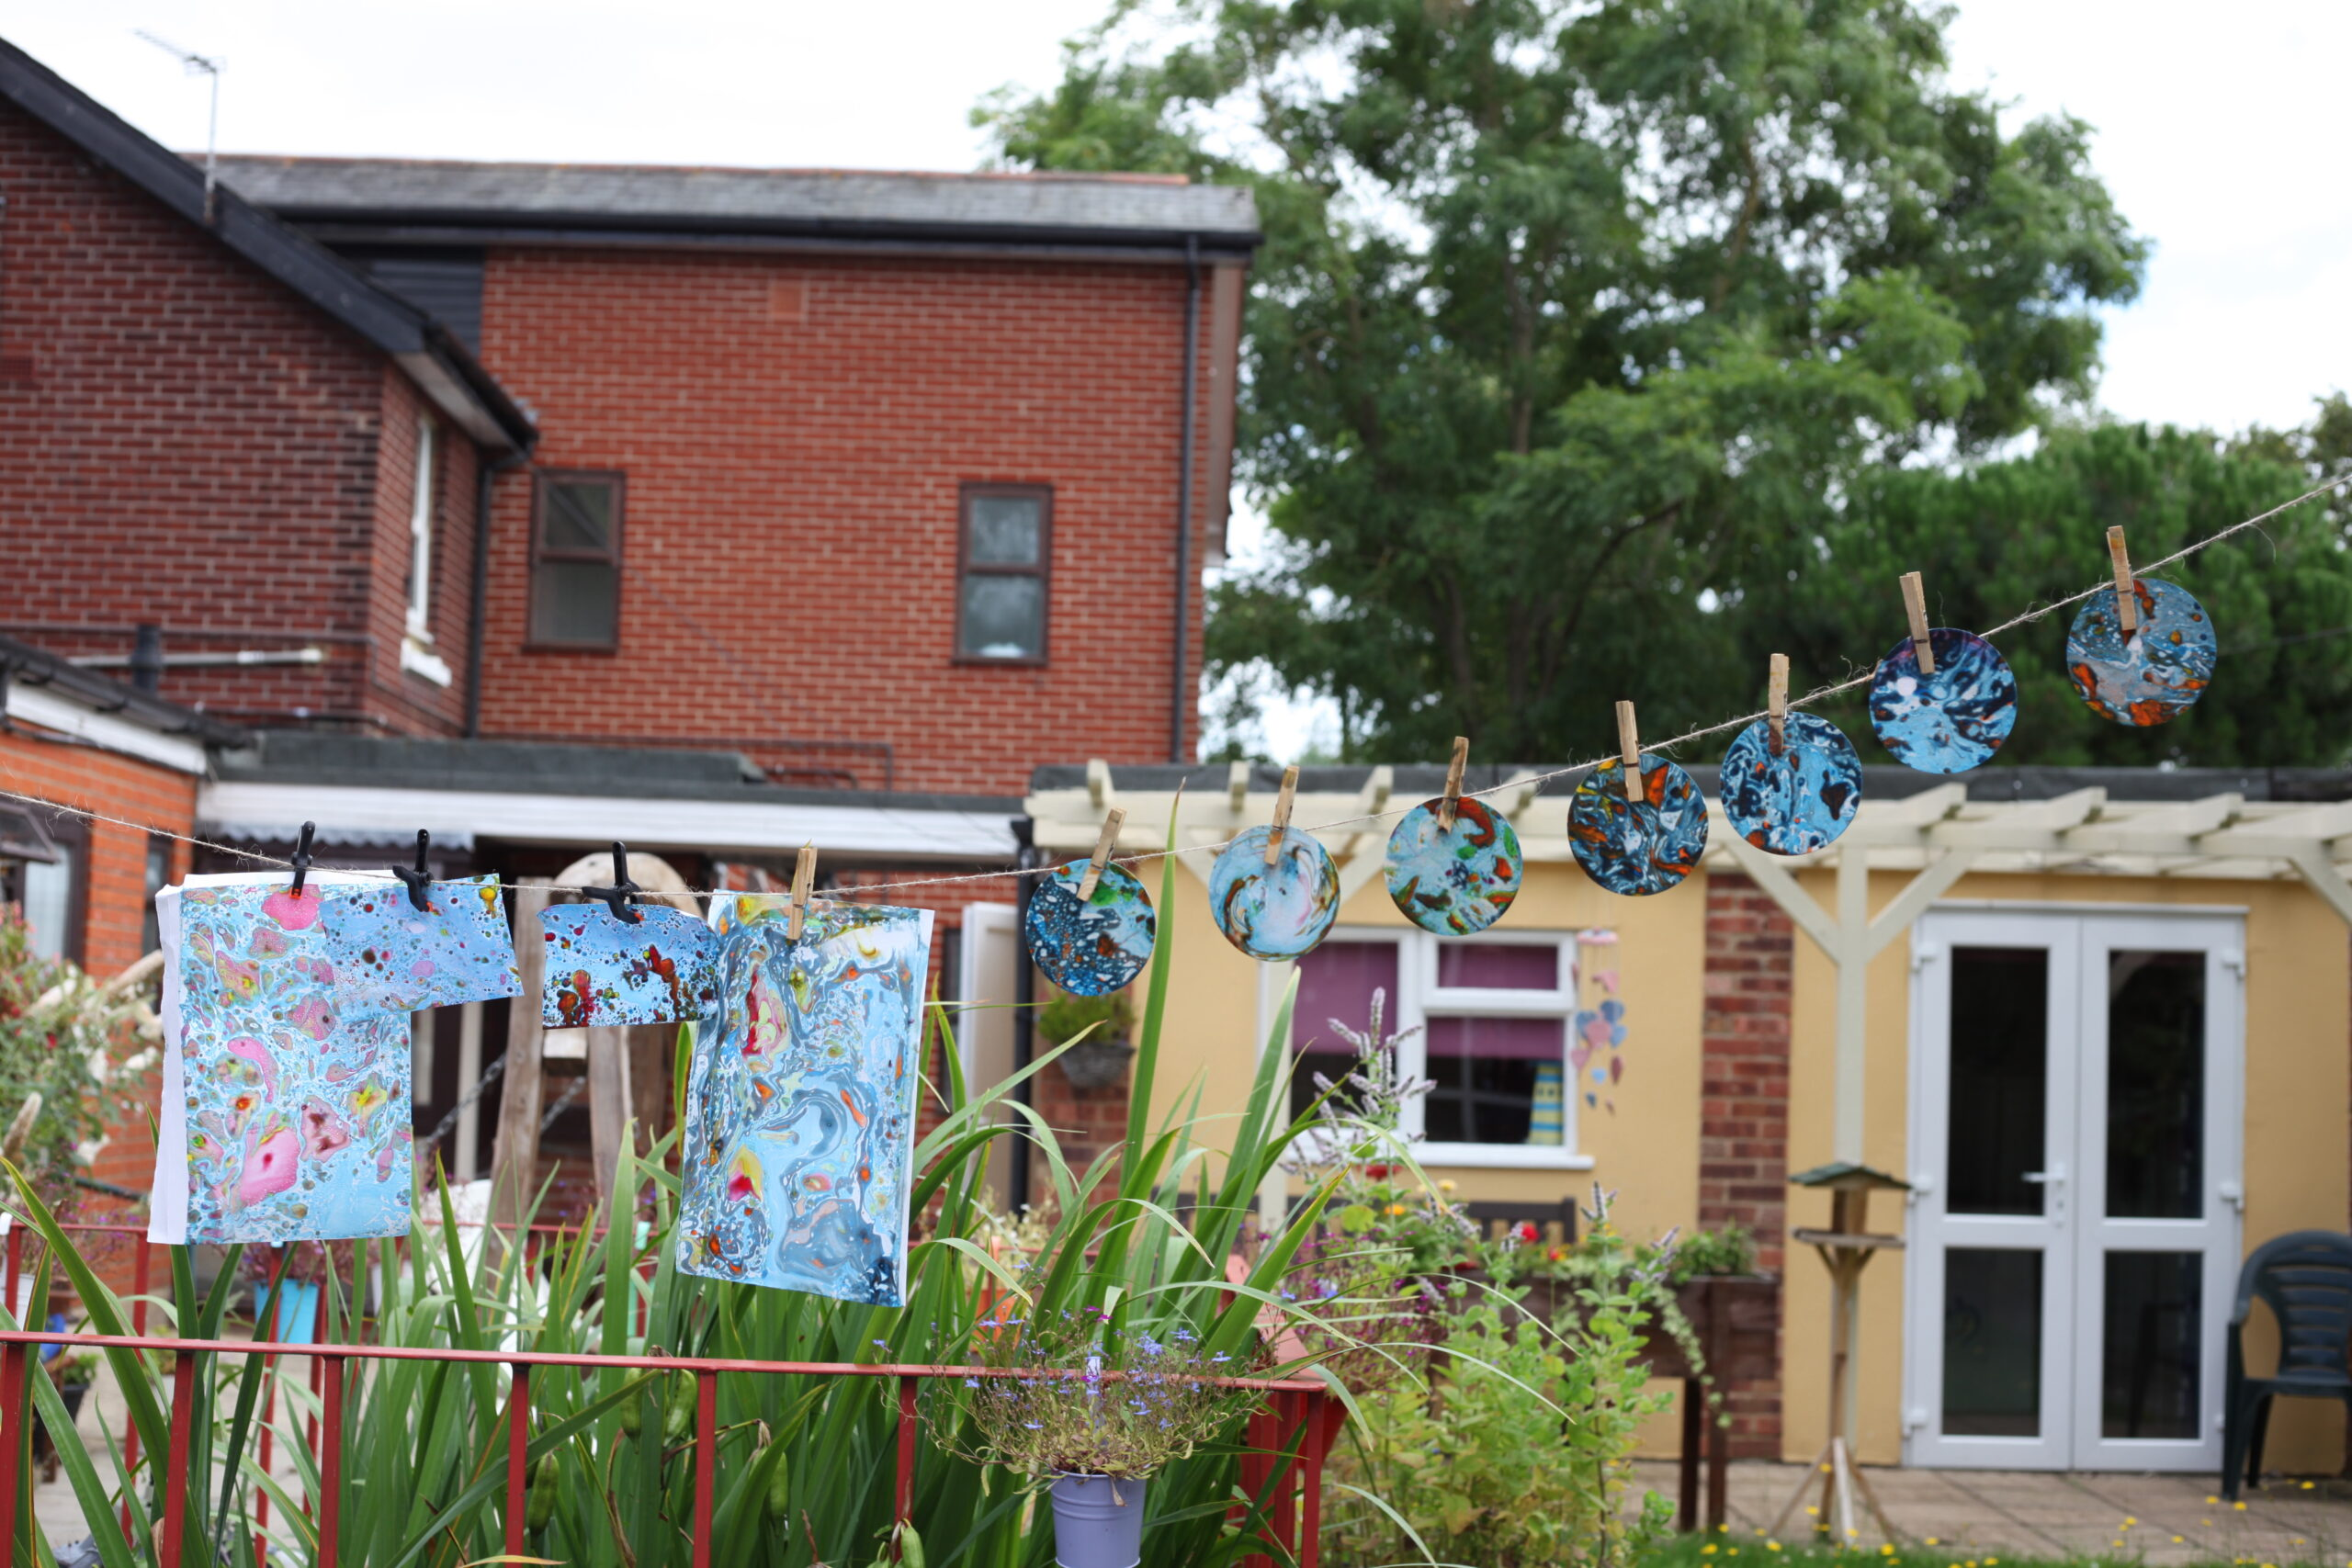 Photo shows the garden of a care home, across the garden is a washing line holding up different pieces of marbled paper - some are square and some are round - they are mostly dominated by blue colours Essex 2021 Workshop Quenby__Photo Credit Georgia Akbar & Lily Ash Sakula.jpg (1)